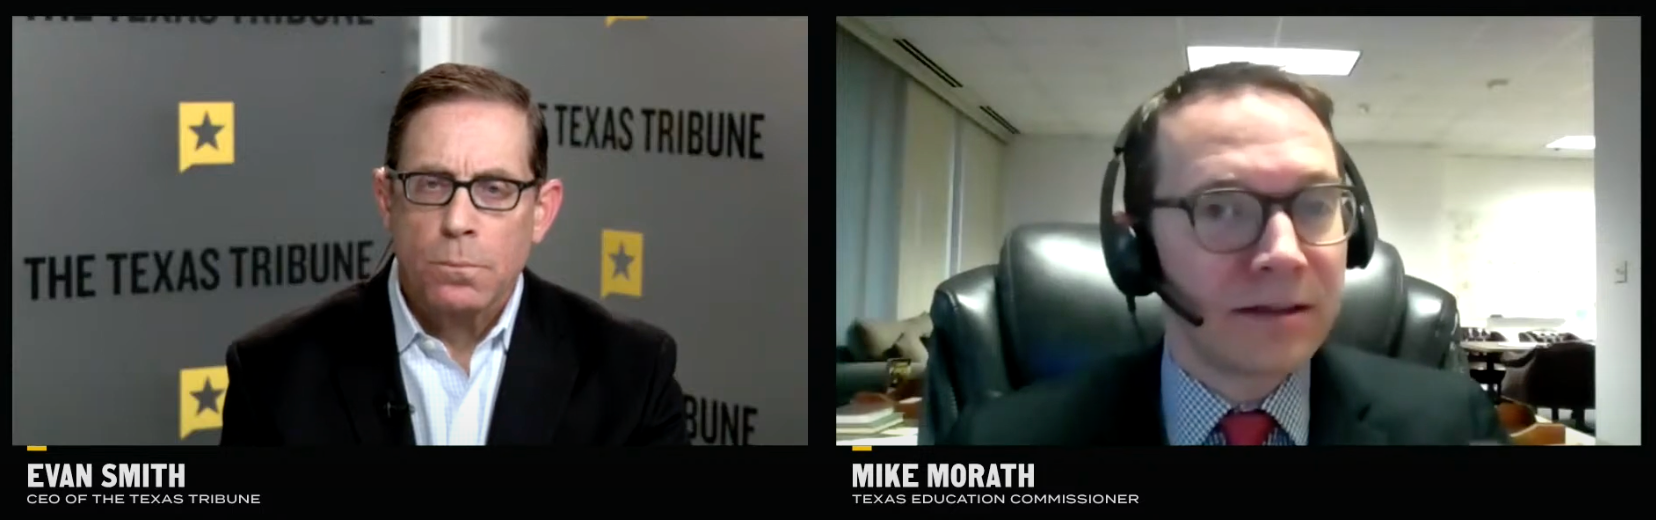 Texas Tribune's Evan Smith (left) and Education Commissioner Mike Morath